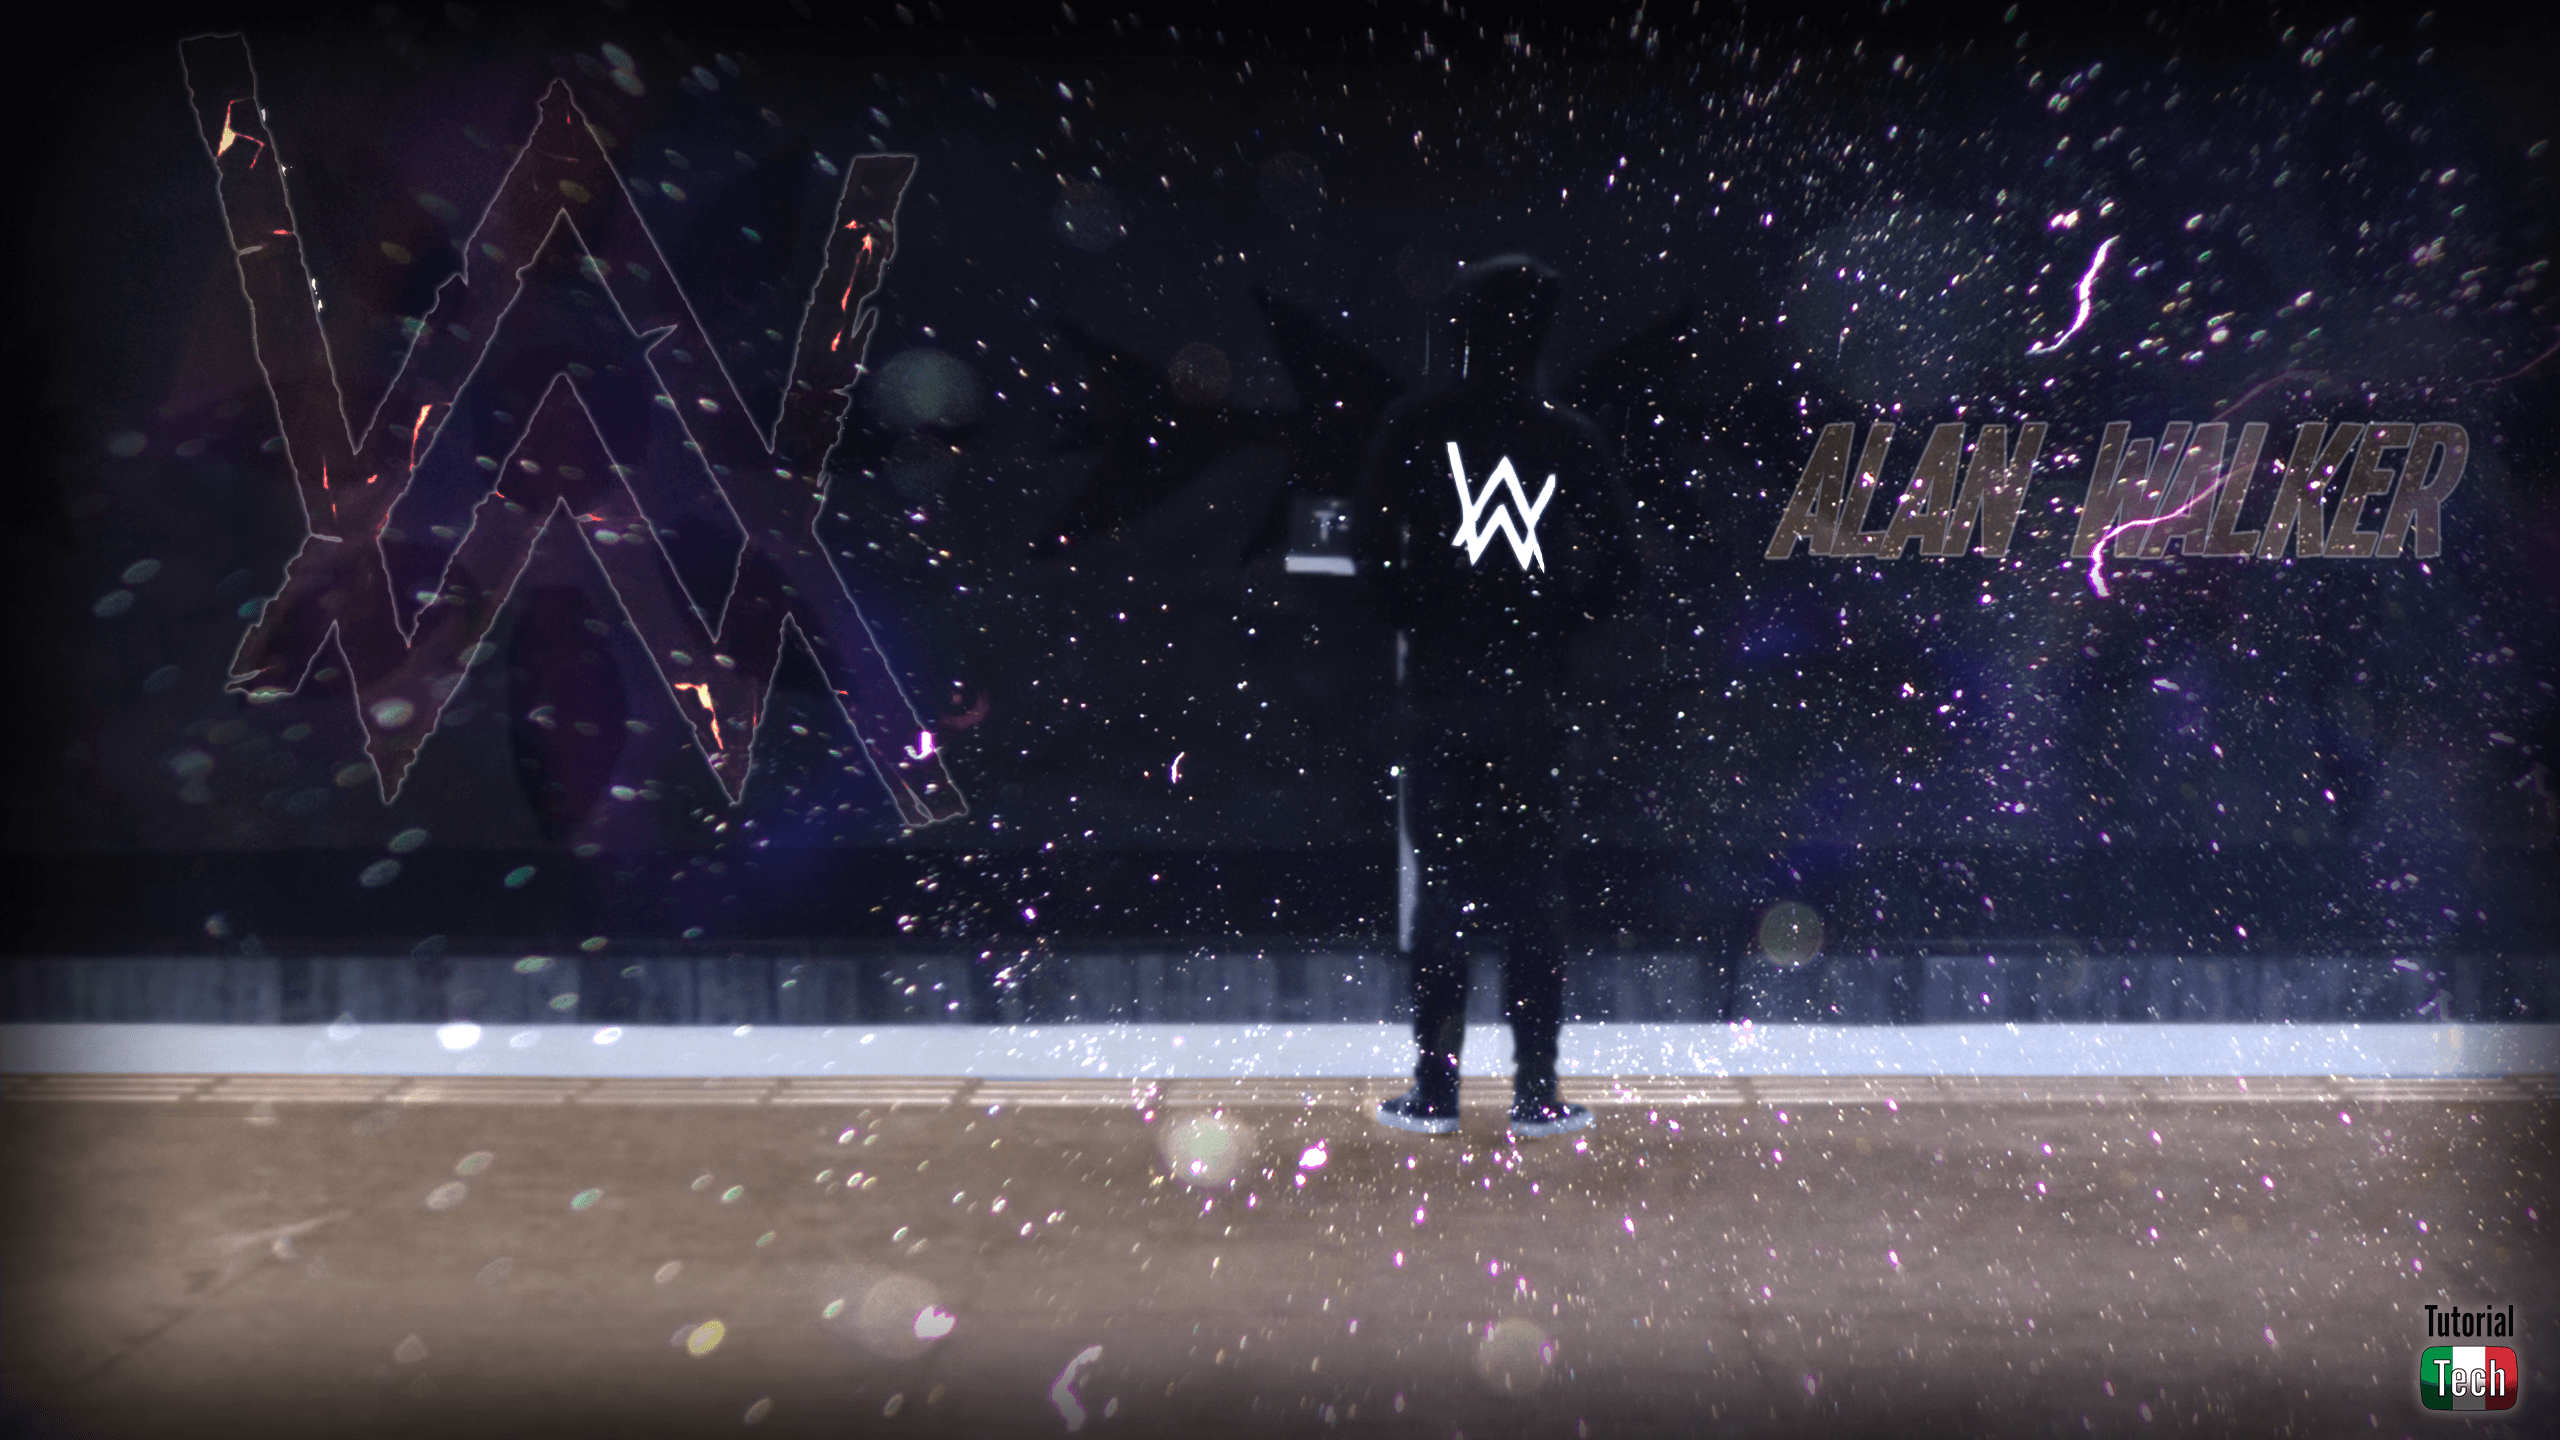 Alan Walker Wallpapers 2560x1440